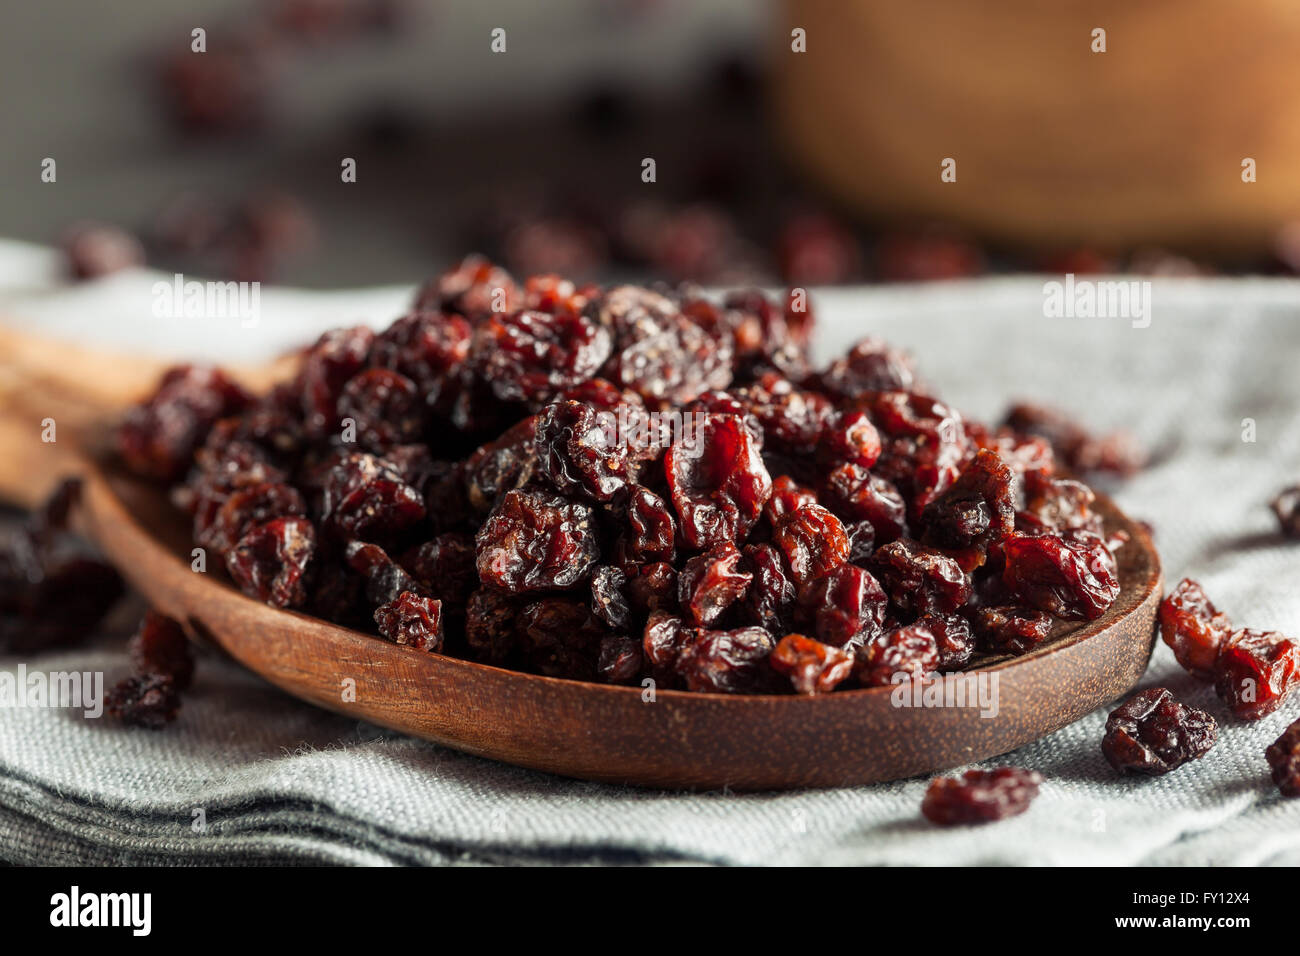 Homemade Dry Black Currants Ready to Eat - Stock Image